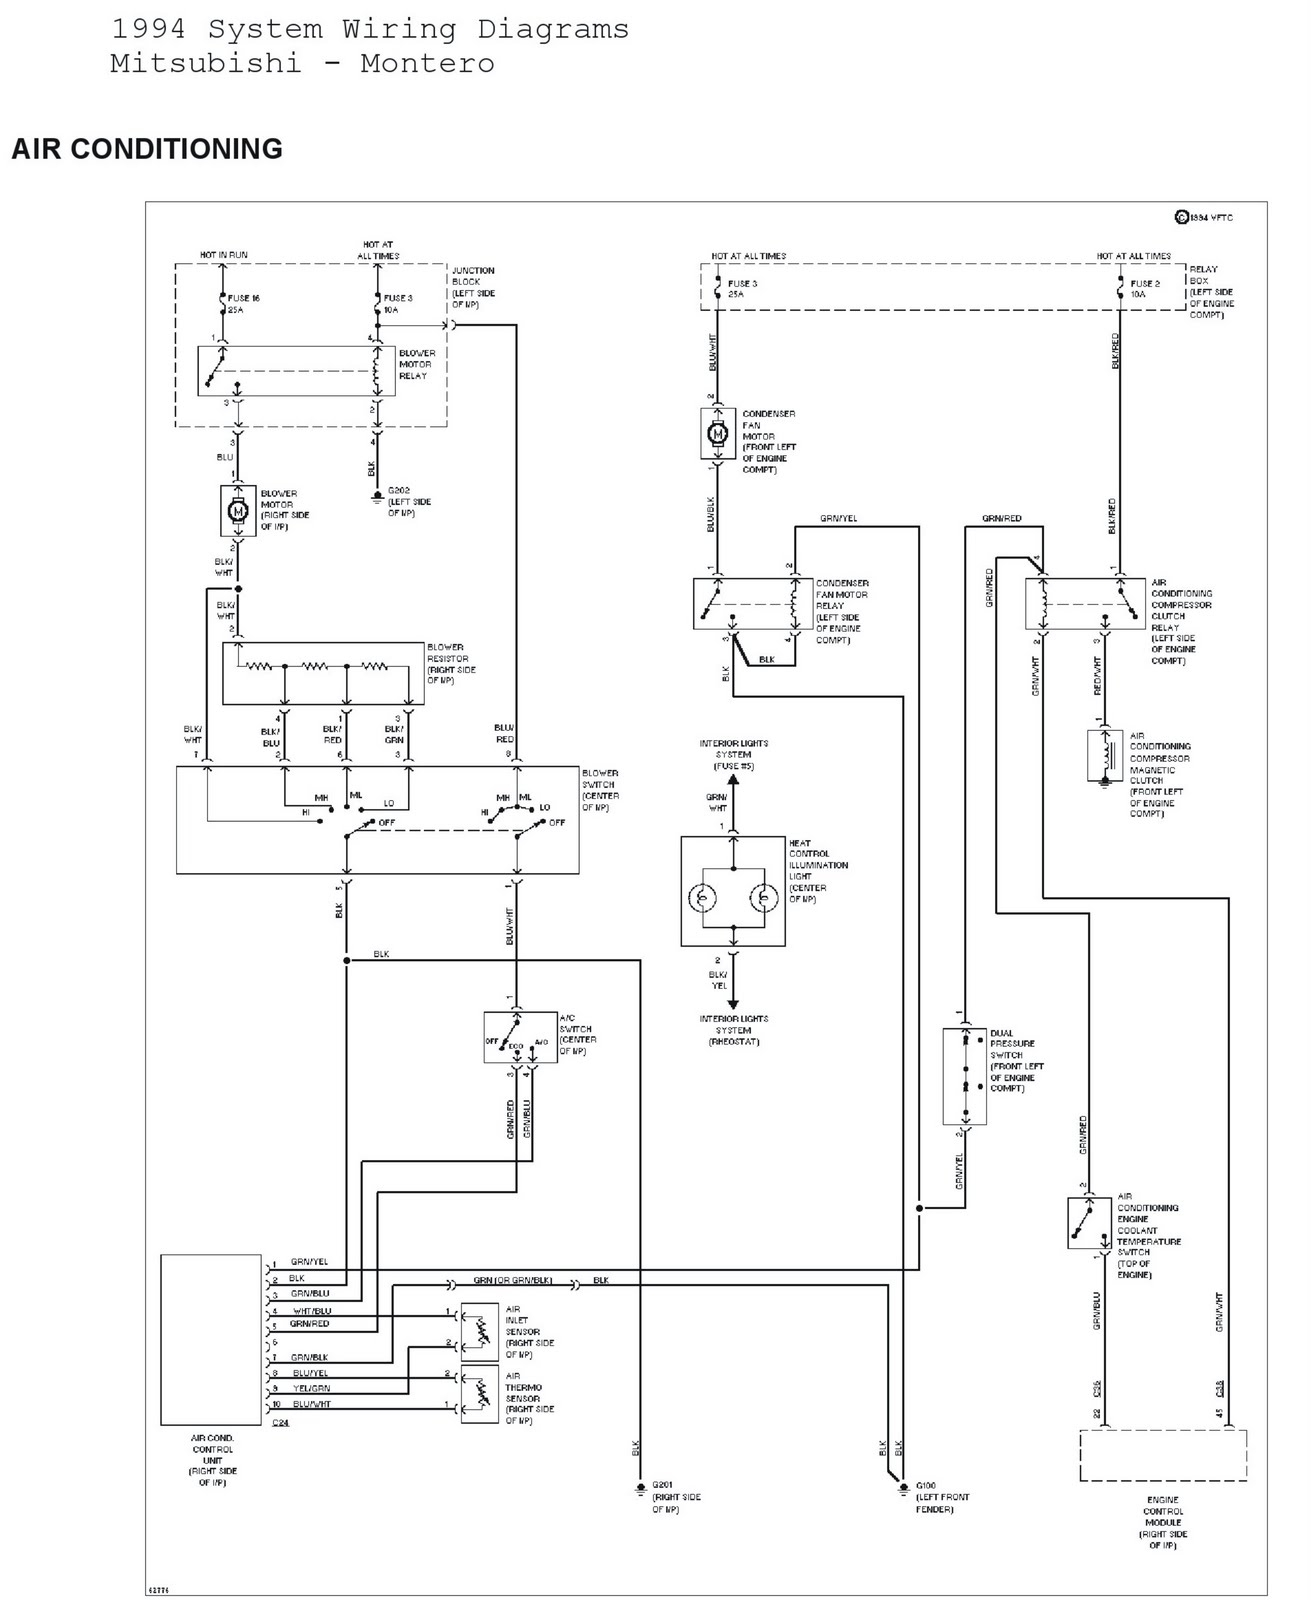 0001 mitsubishi mighty max ac wiring diagram wiring diagram  at mifinder.co